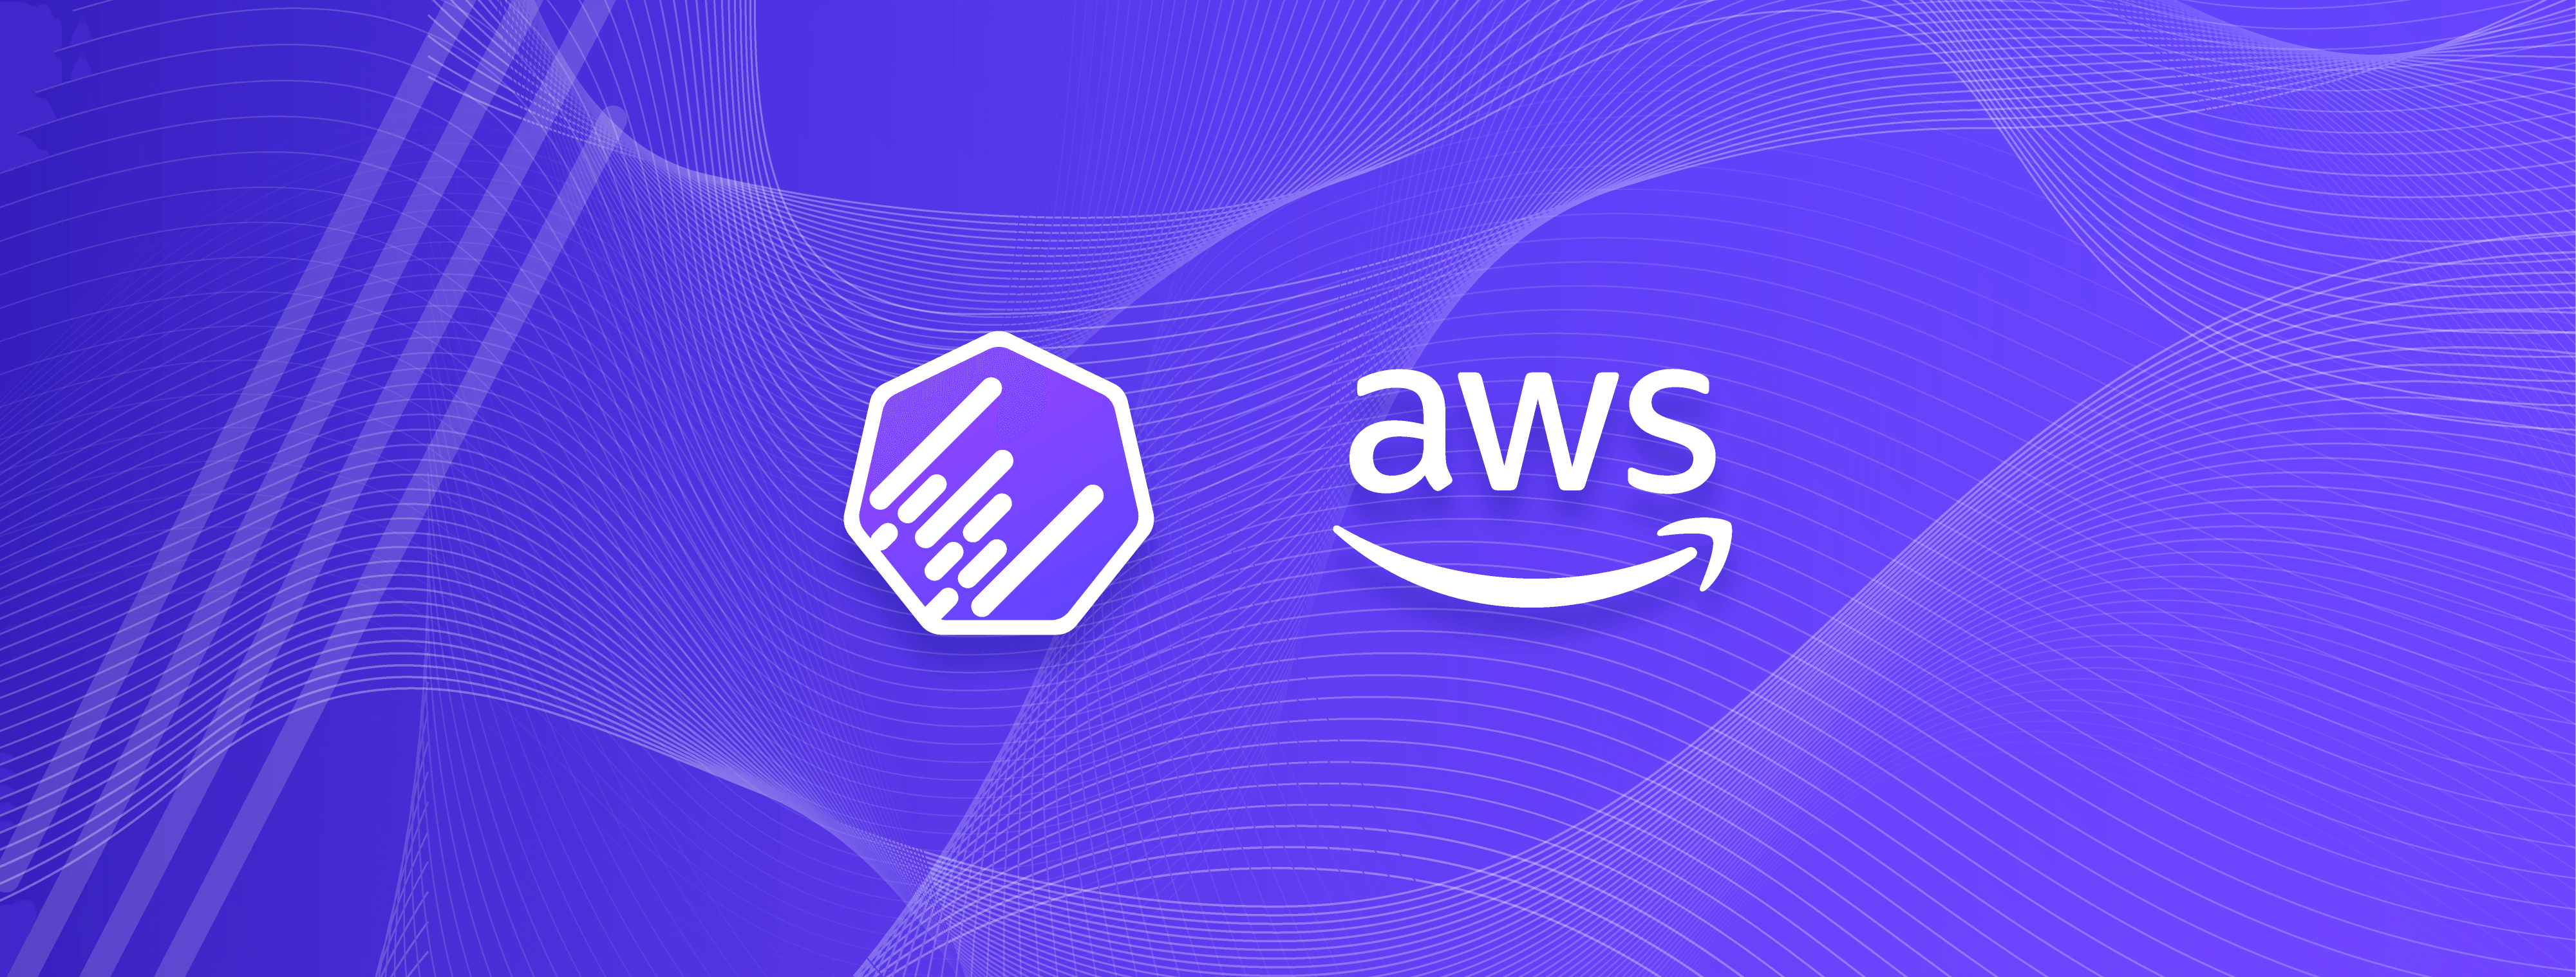 Better Utilize Infrastructure and Reduce Costs With Mixed Instance Types on AWS